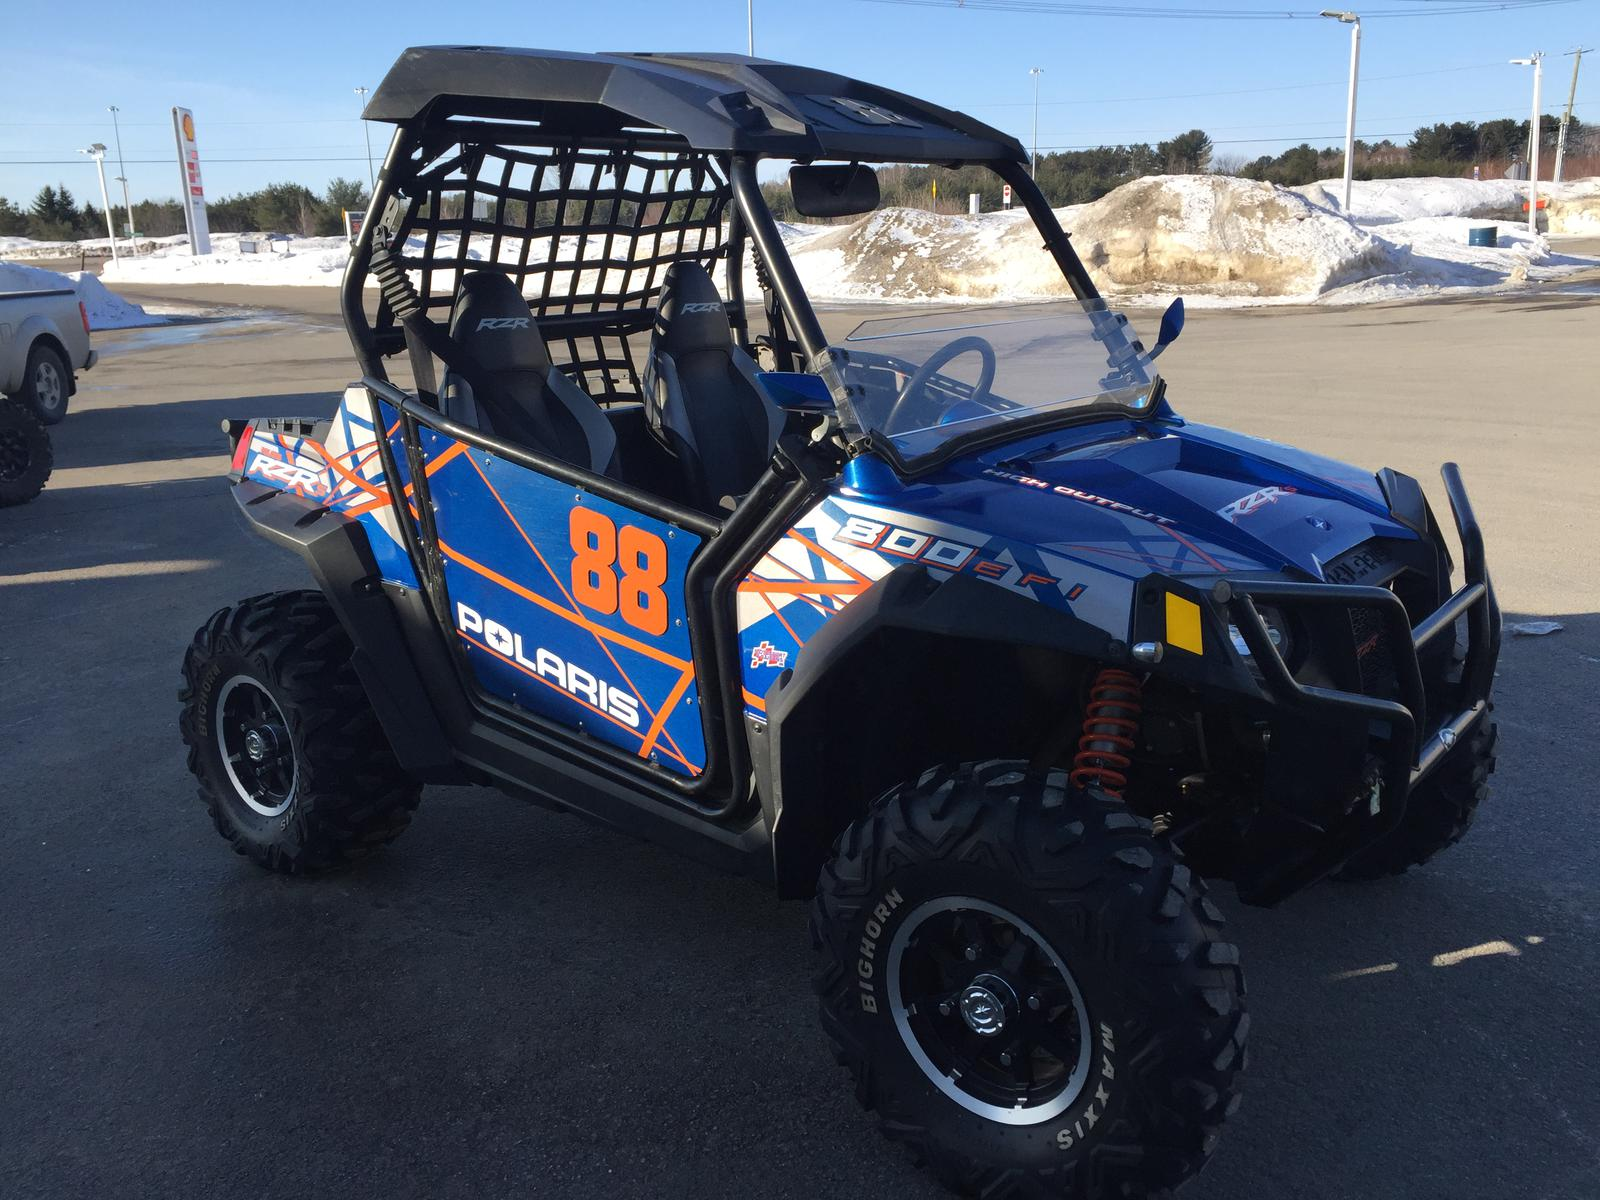 hight resolution of 2013 polaris industries rzr 800 eps blue fire le for sale in newport vt atvparts com 802 487 1000